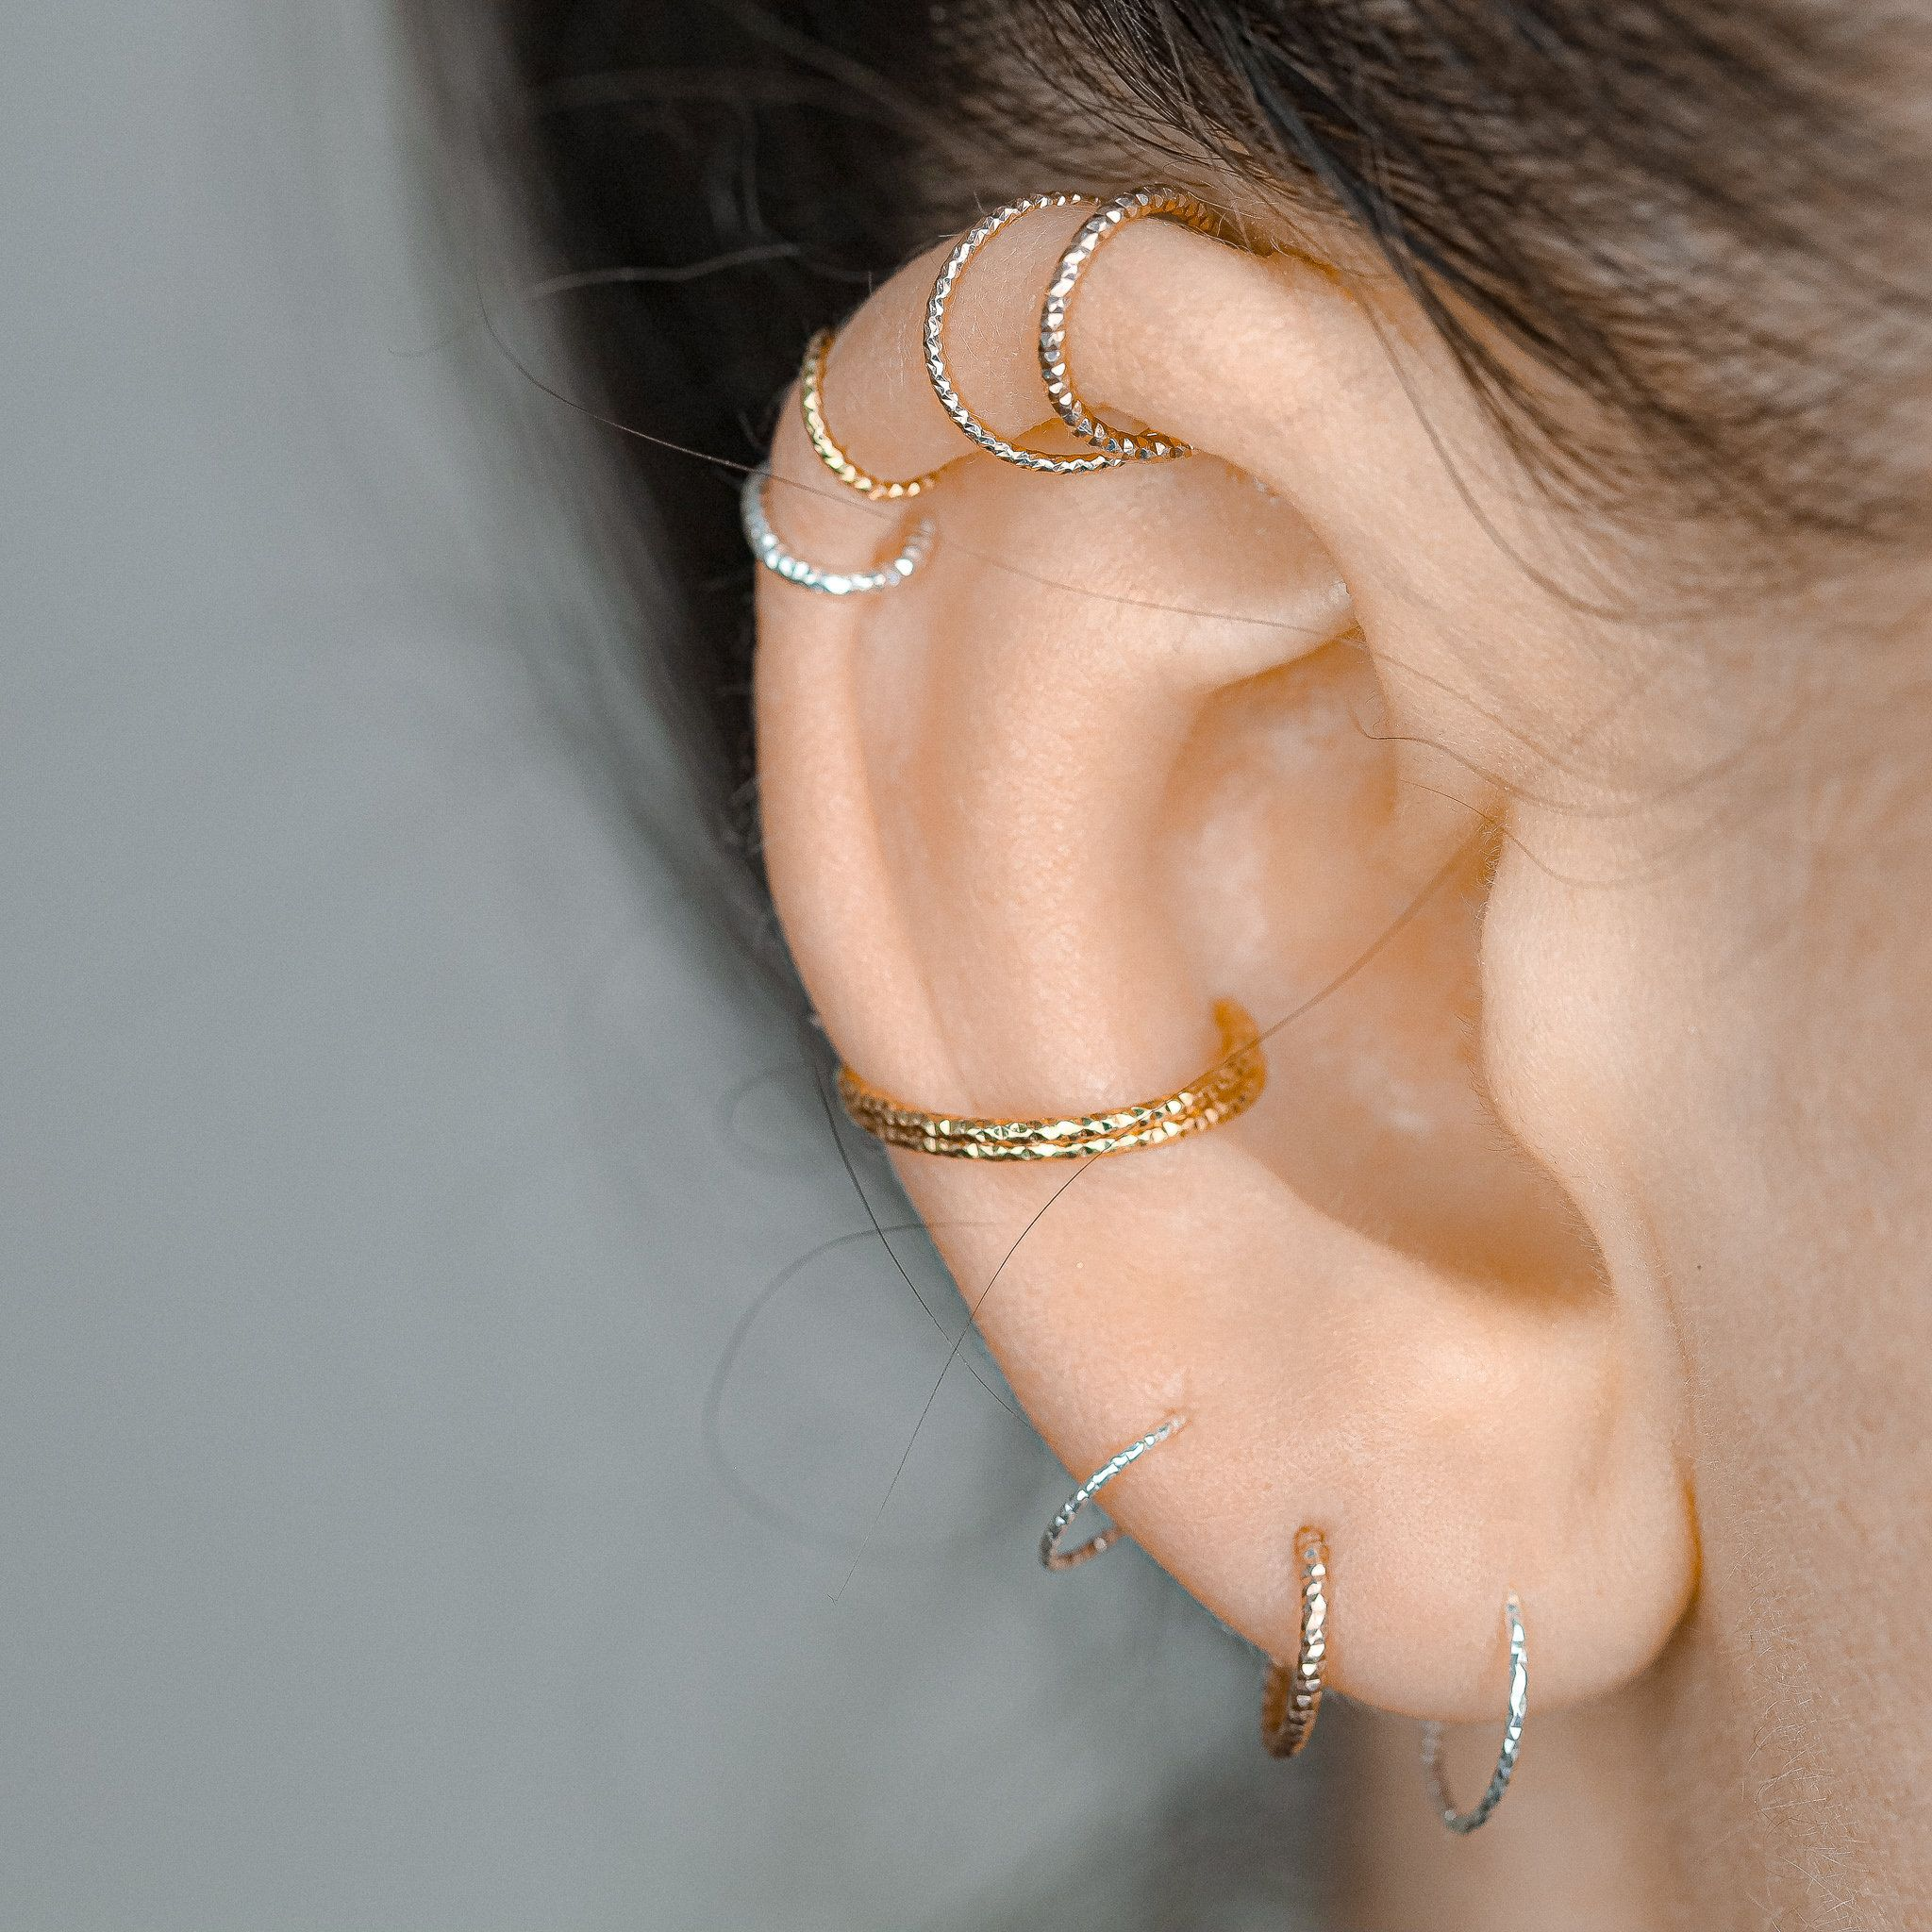 Tiny 925 Sterling Silver Cat 20G Cartilage Earring 8mm Cat Earring Silver Cats Helix Hoop piercing Jewelry